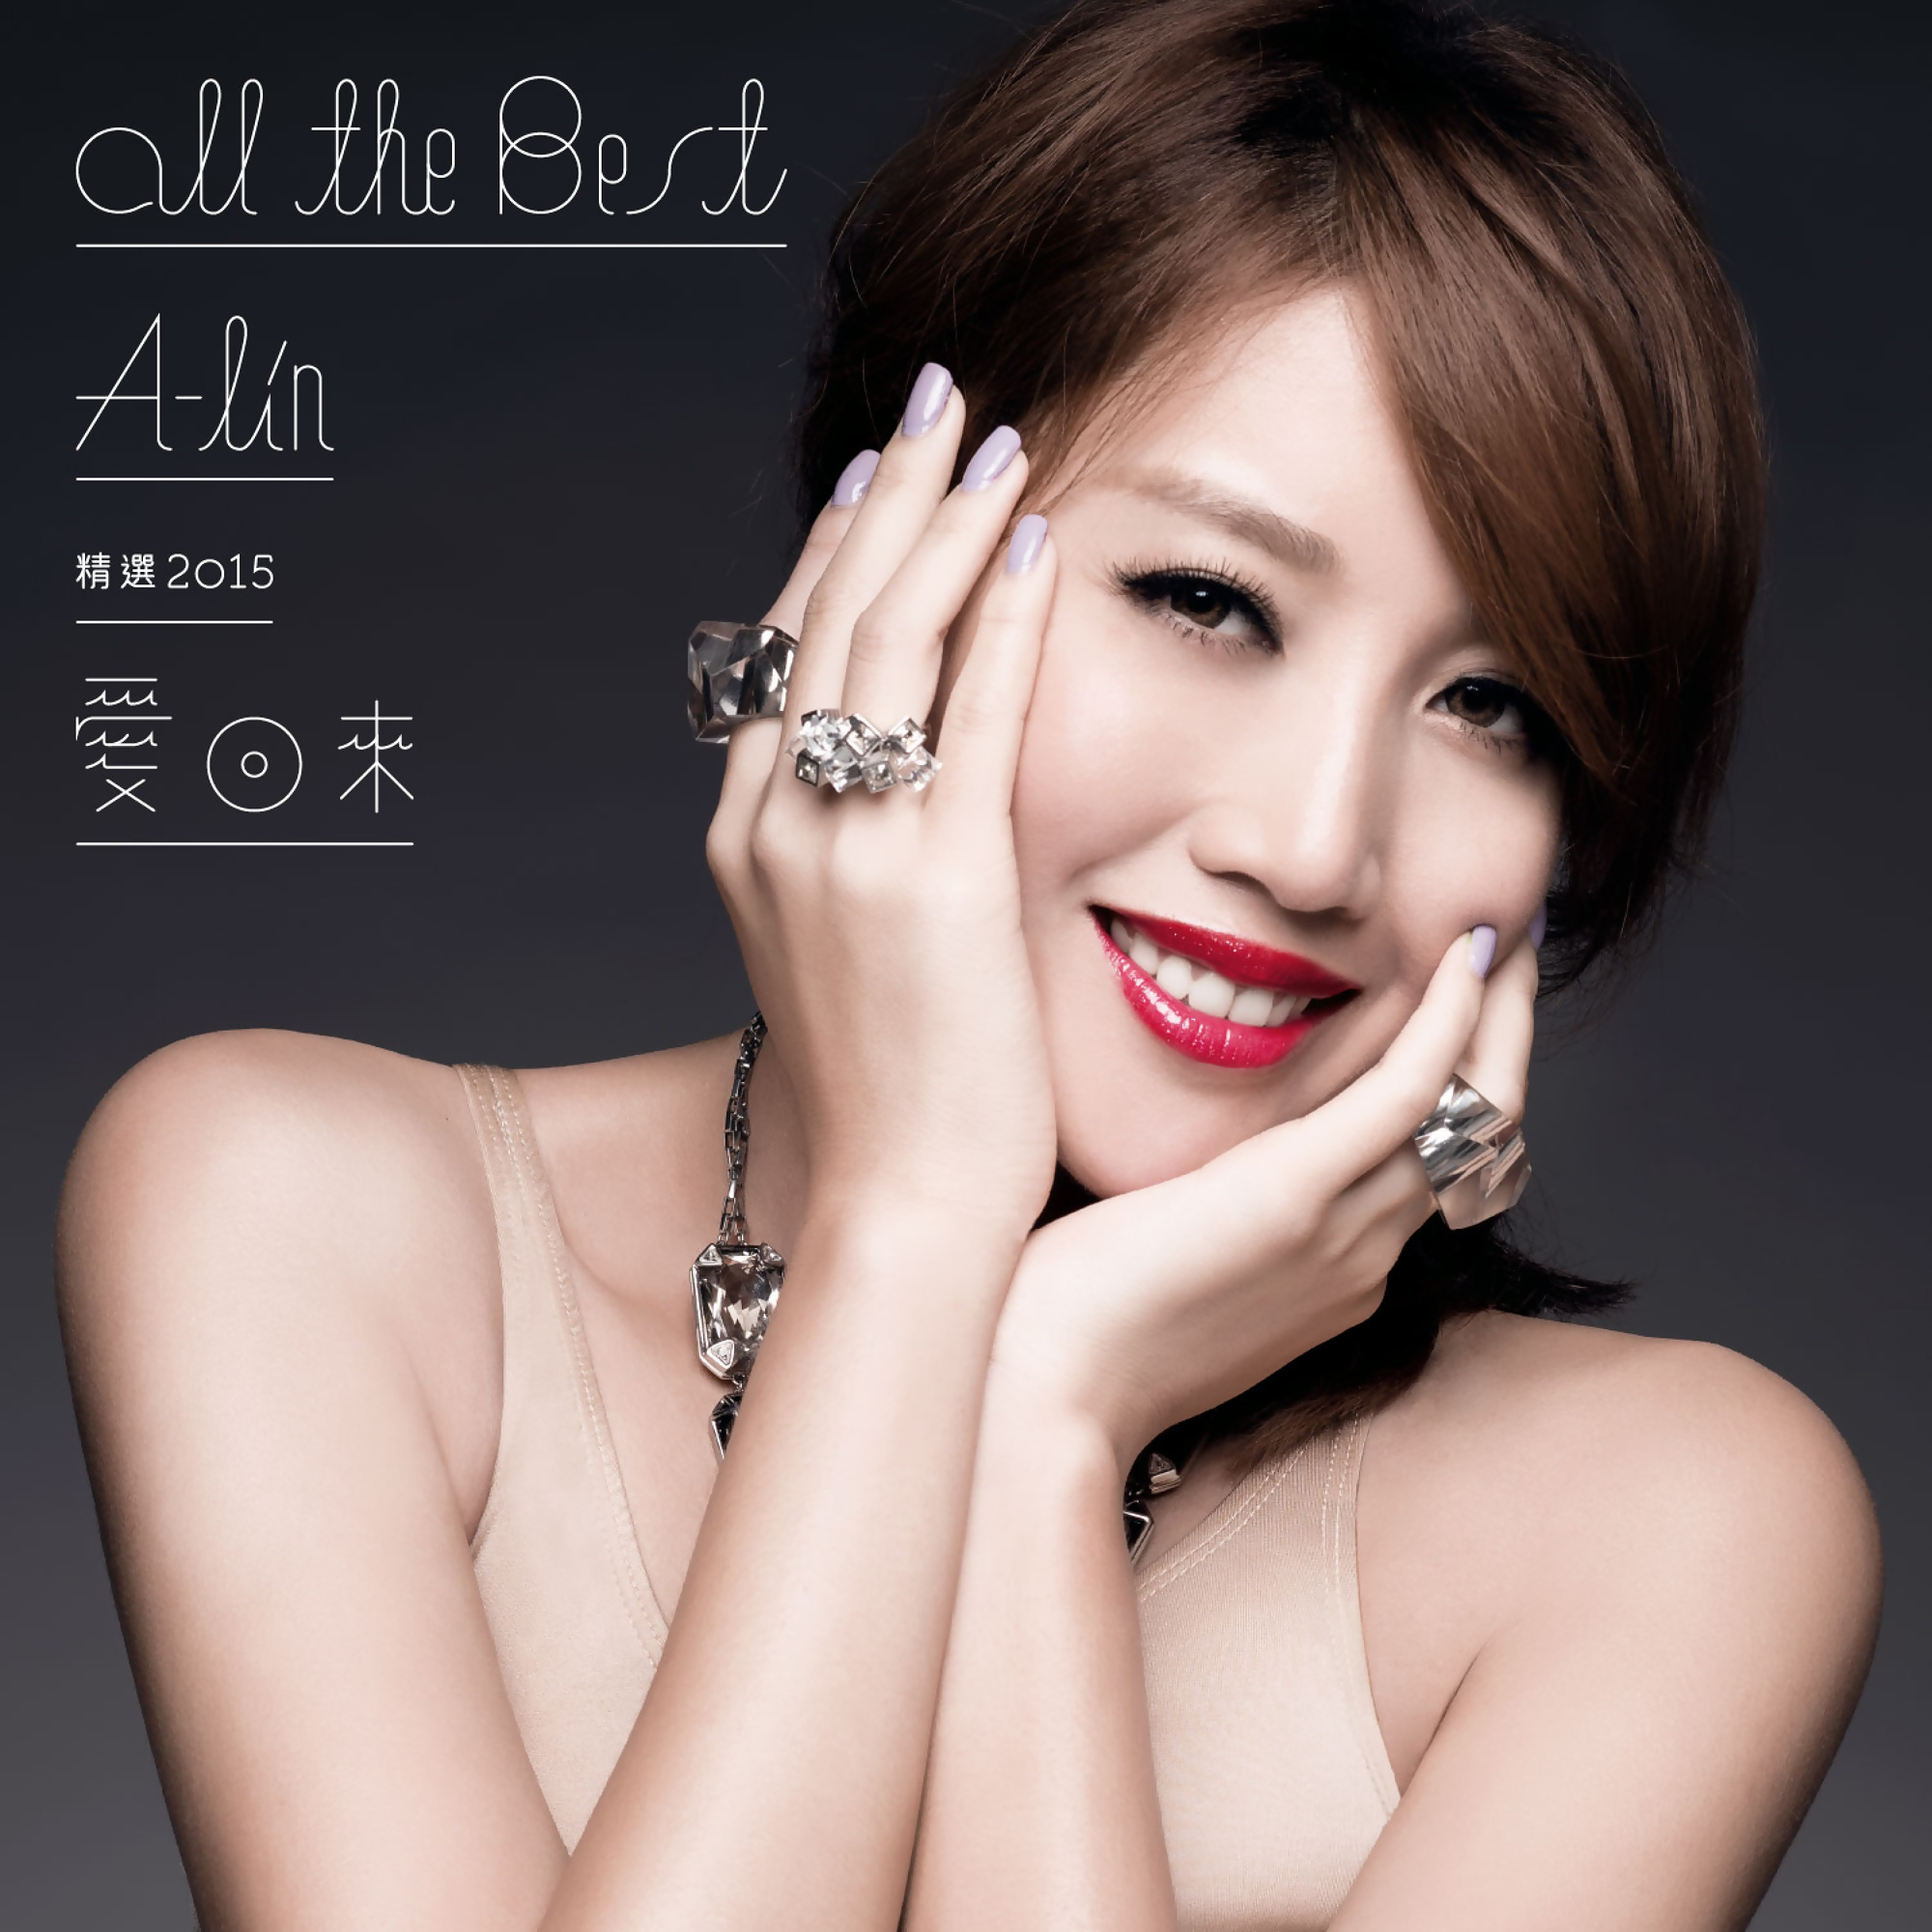 A-Lin 爱回来 ALL THE BEST 精选 2015